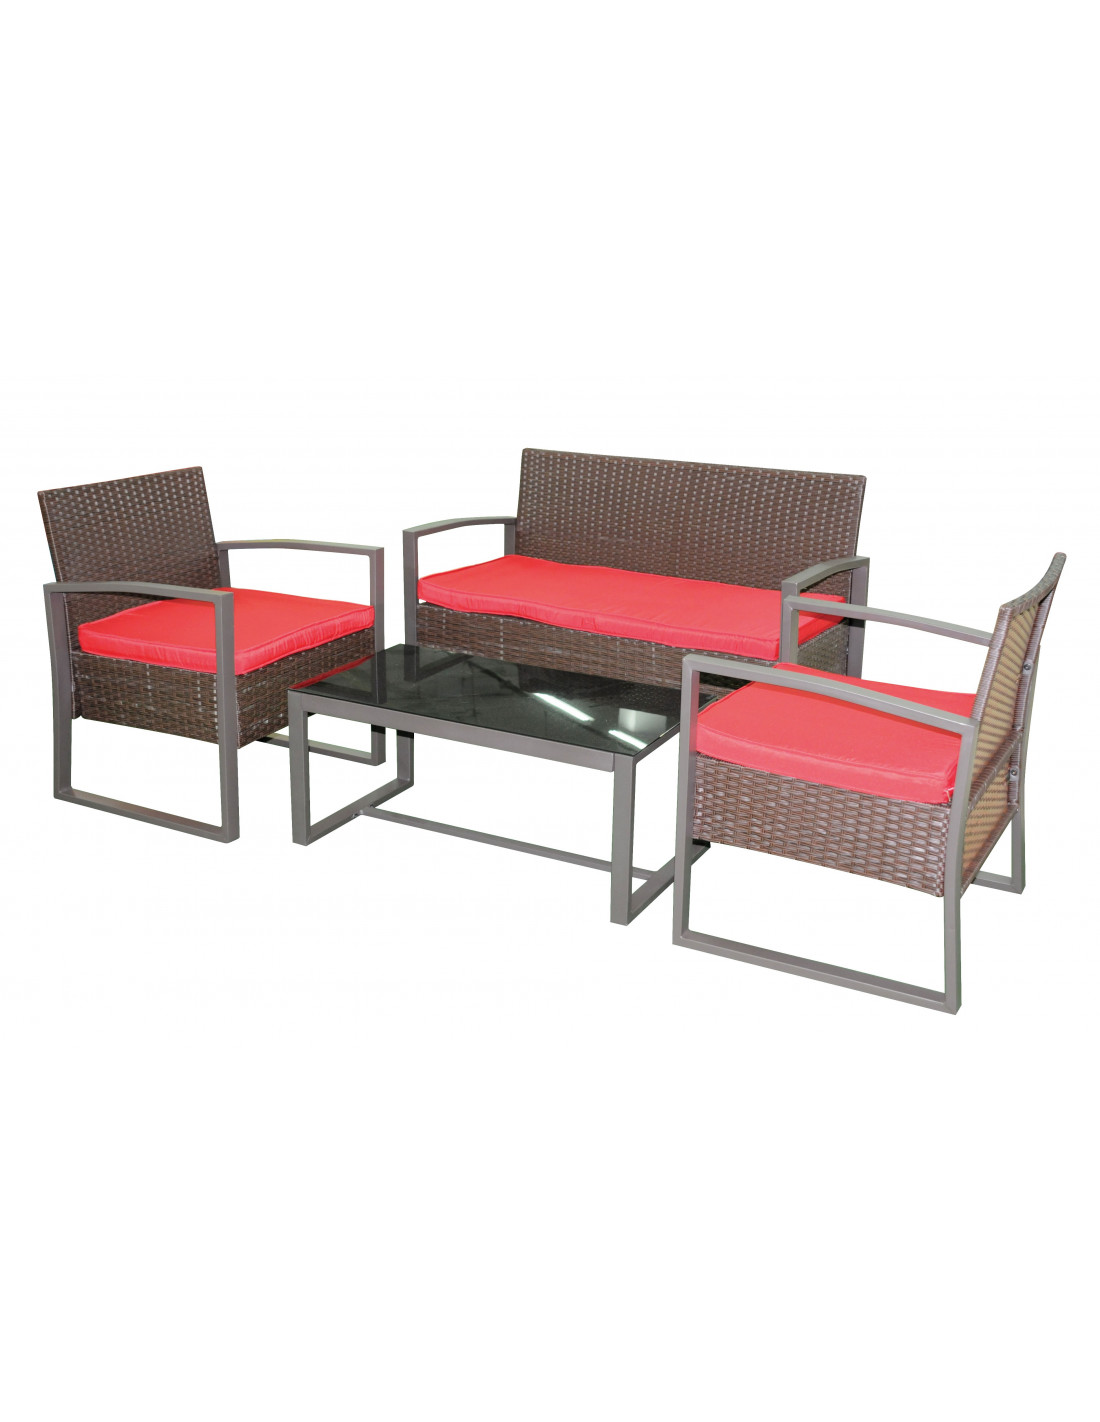 ensemble salon lounger rouge hyper brico. Black Bedroom Furniture Sets. Home Design Ideas